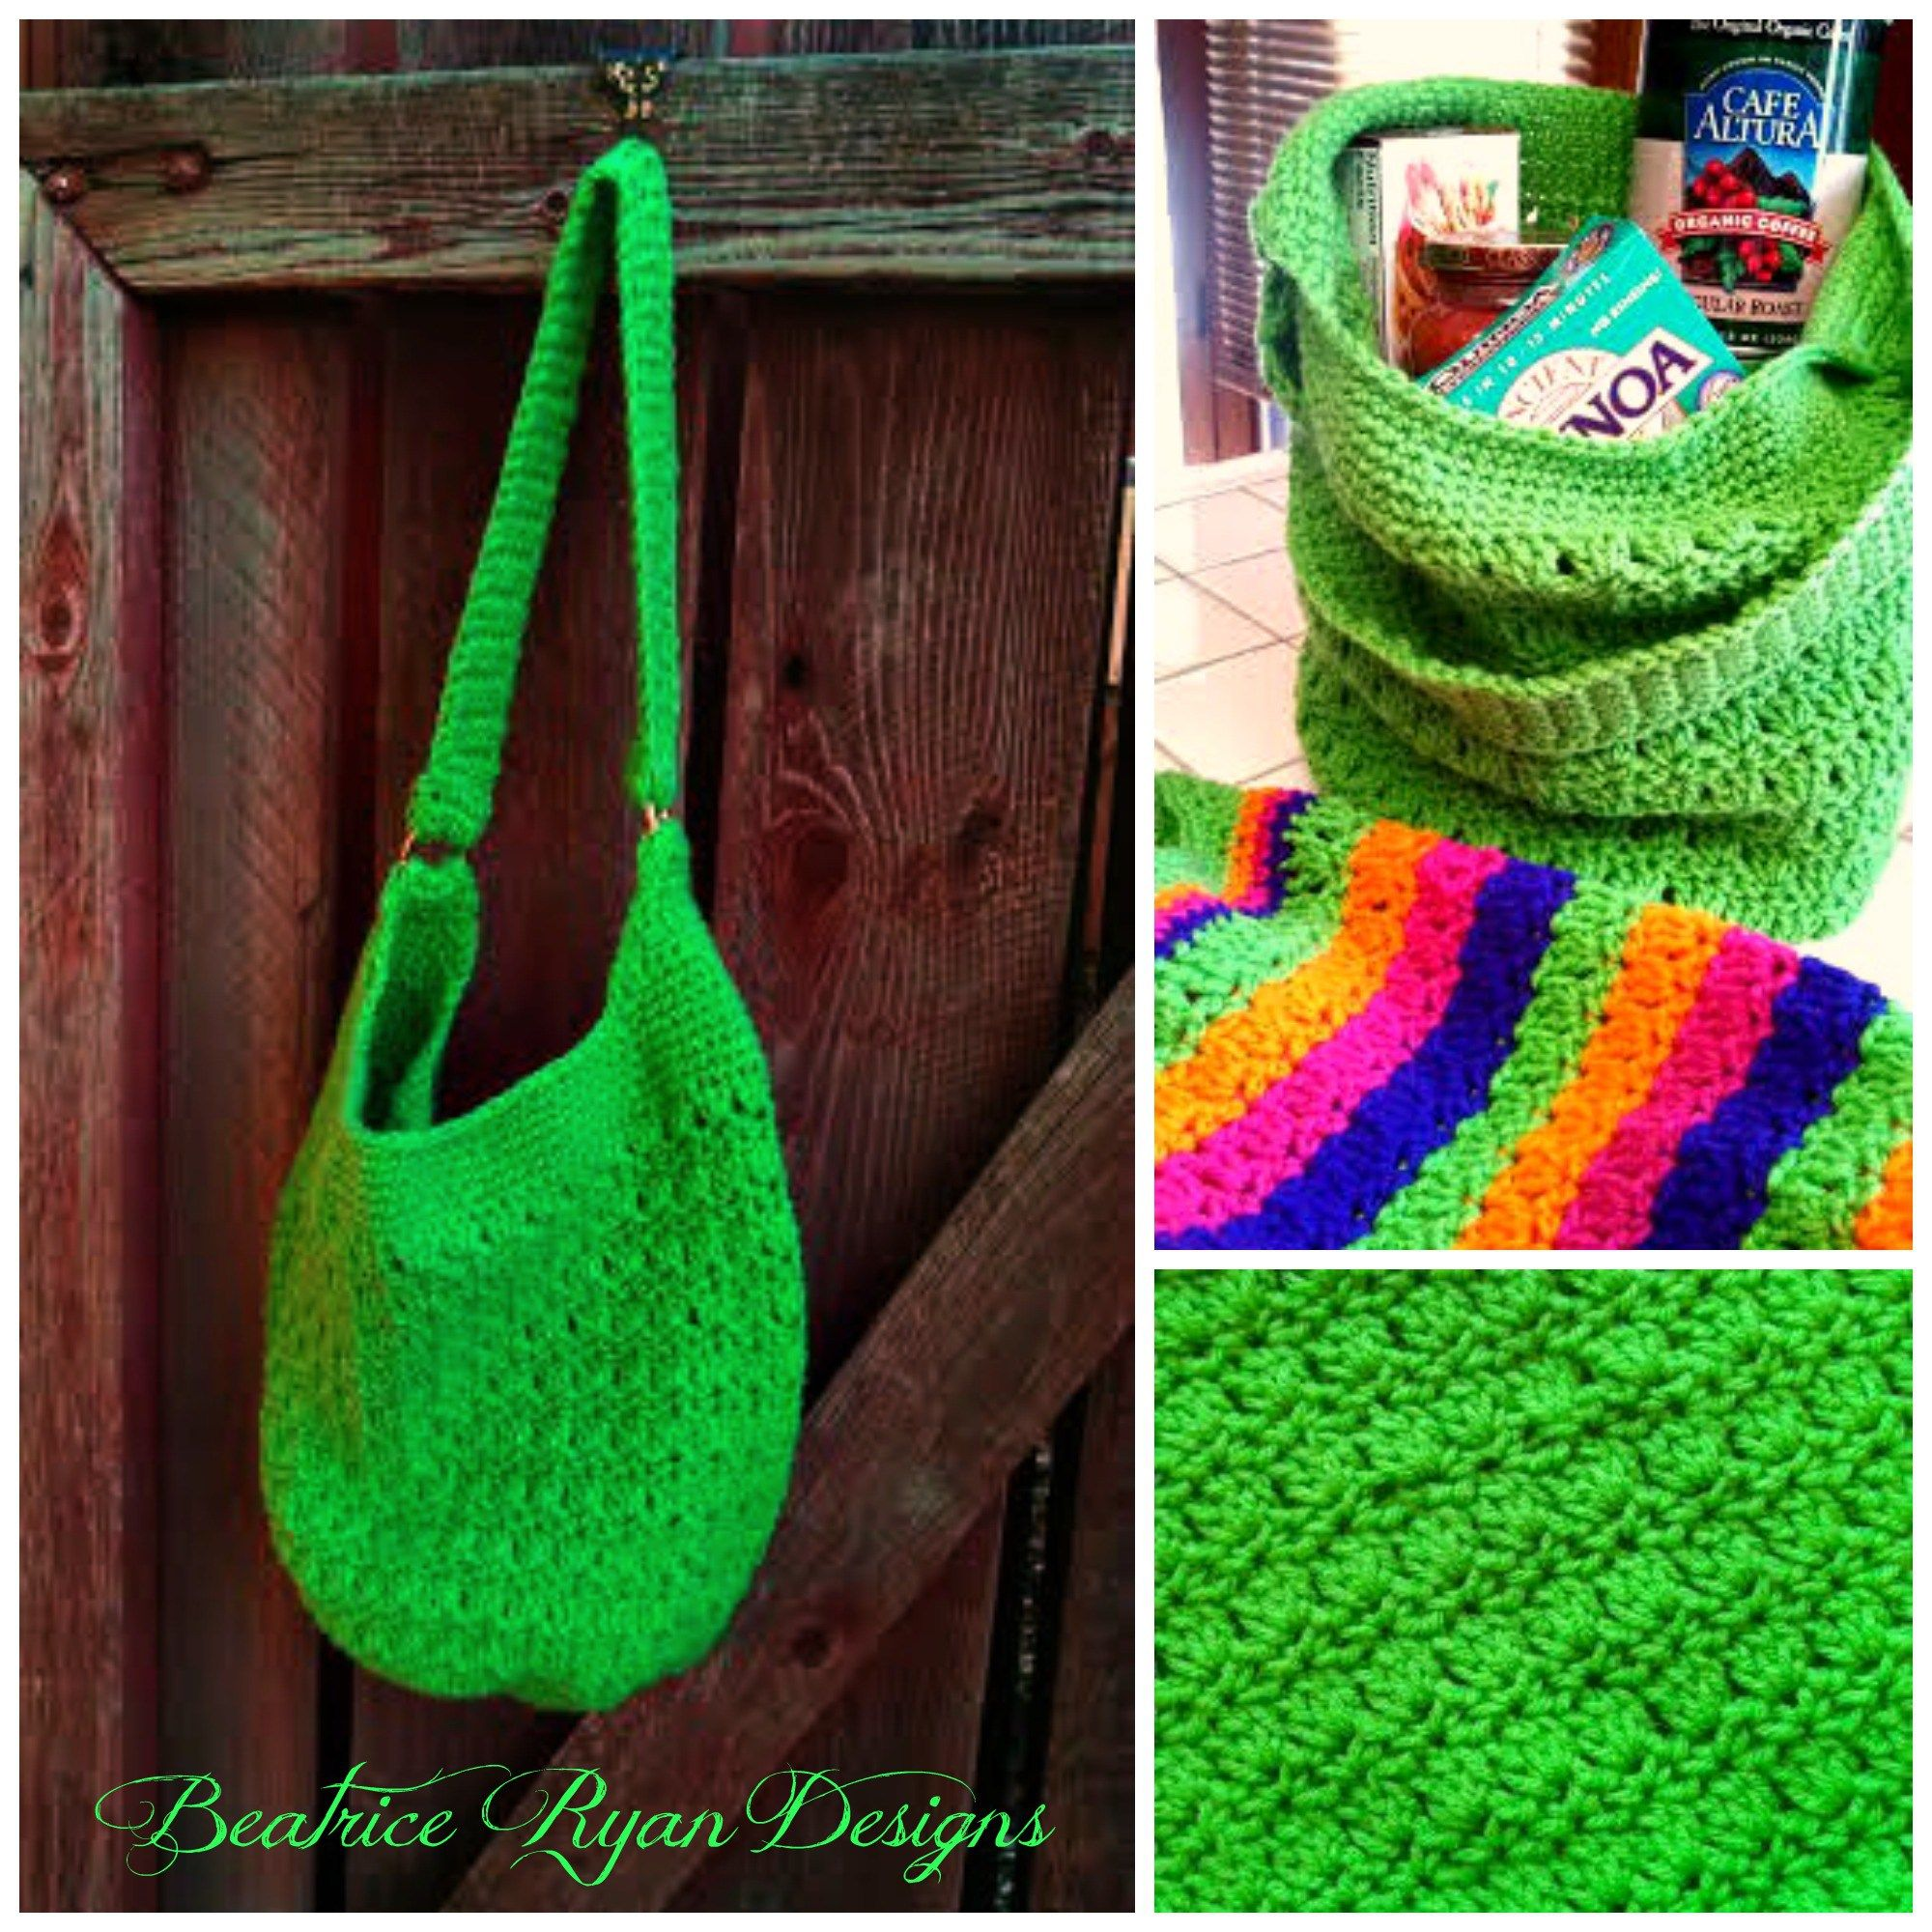 Amazing grace tote free pattern crochet purses and baskets amazing grace tote free crochet pattern from beatrice ryan designs bankloansurffo Gallery